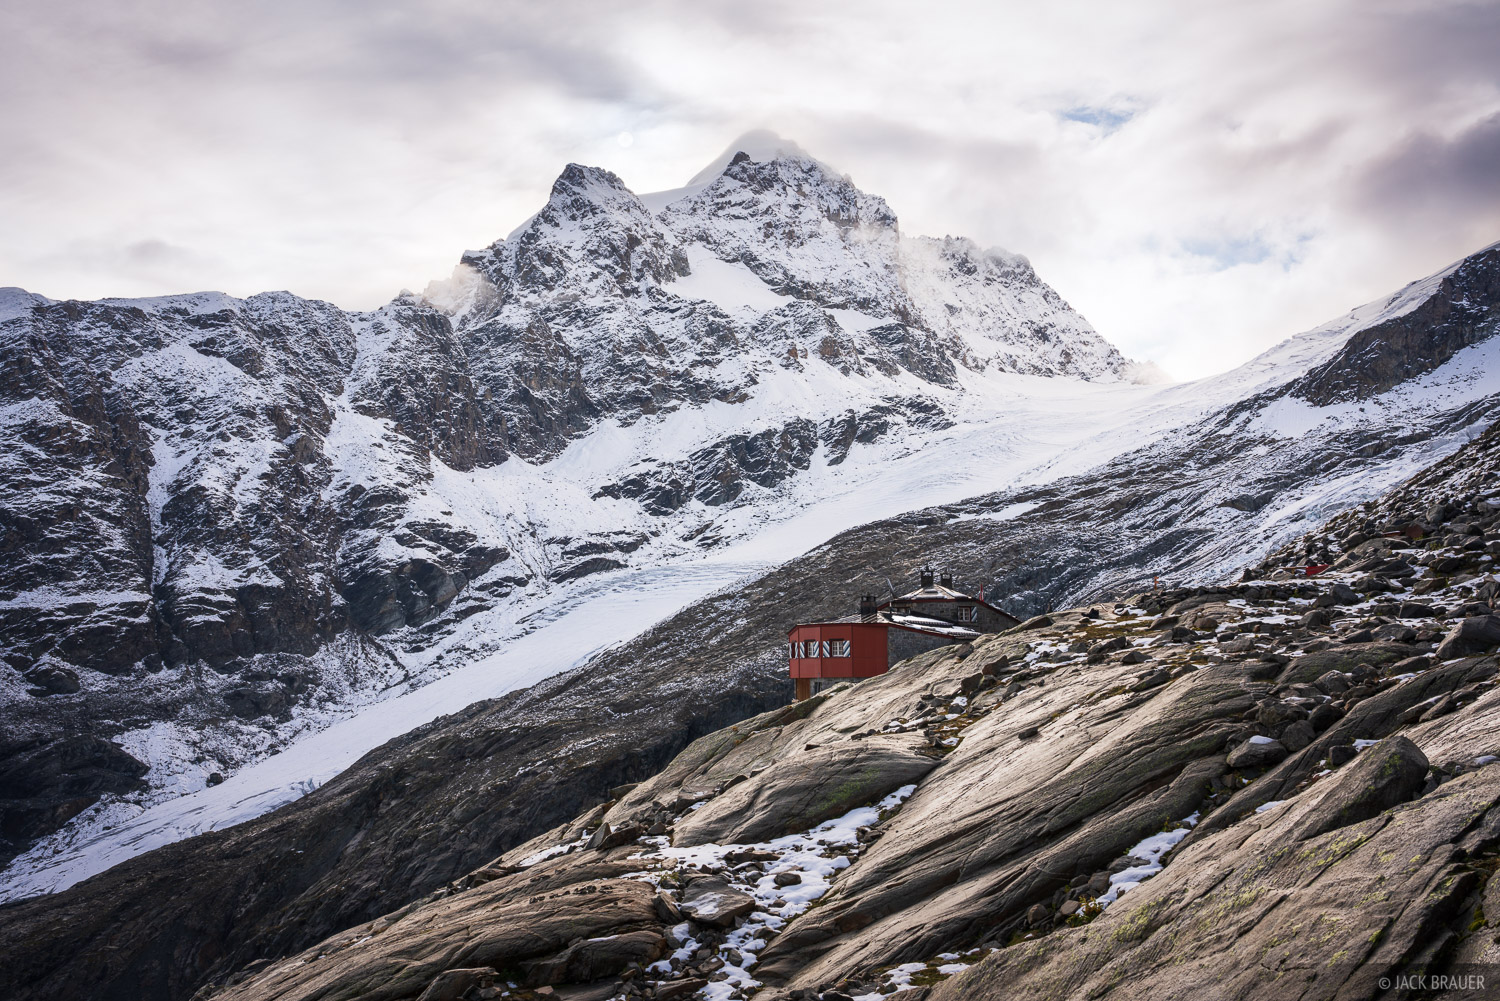 Bernina Range, Chamanna Coaz, Piz Aguagliouls, Rhaetian Alps, Switzerland, hut, photo